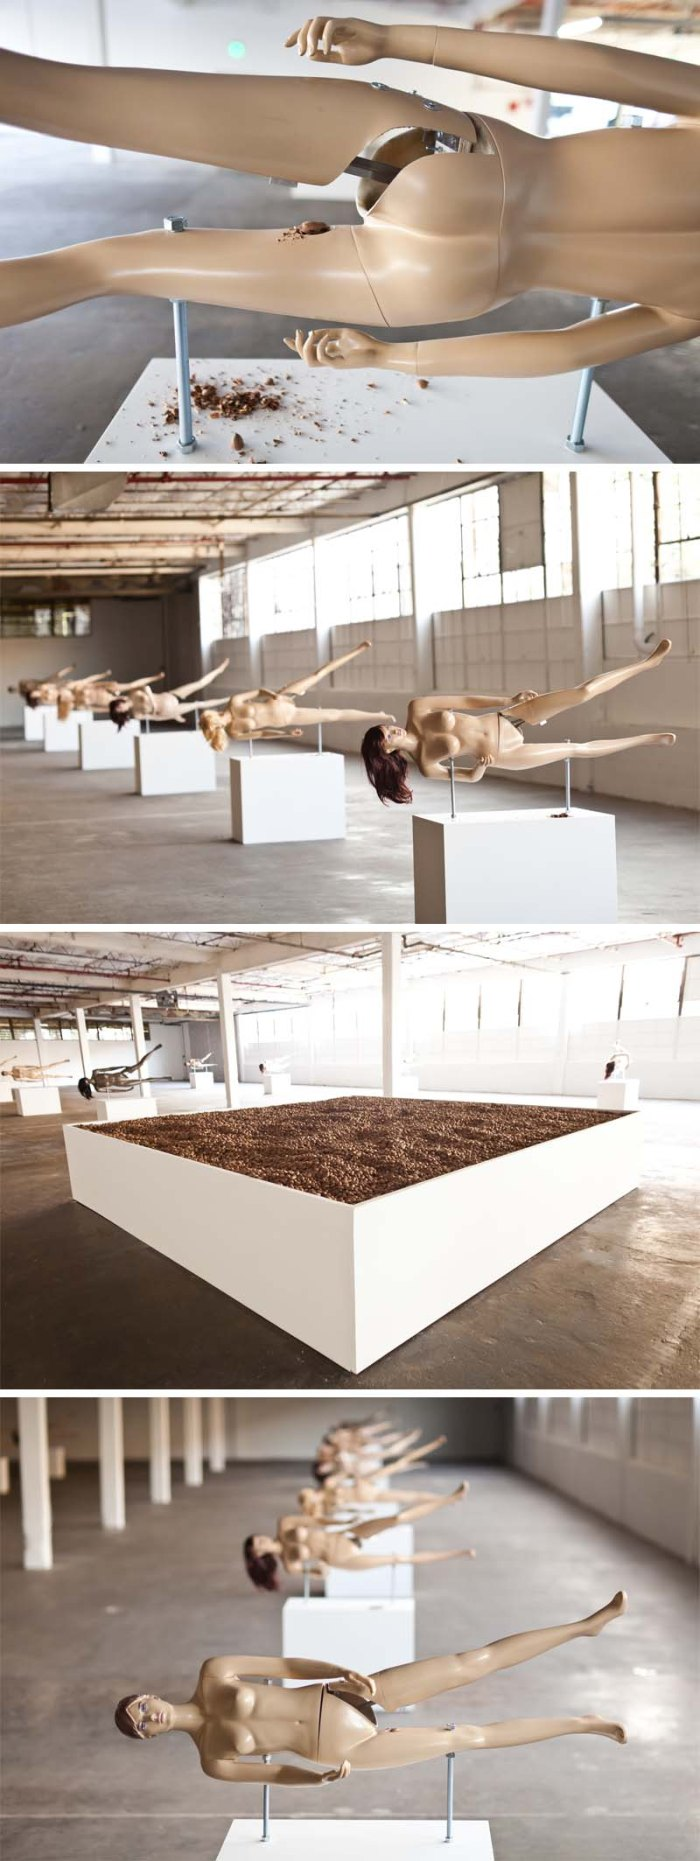 Contemporary participatory art installation of Nutcrackers made with mannequins by Jennifer Rubell, humorous art